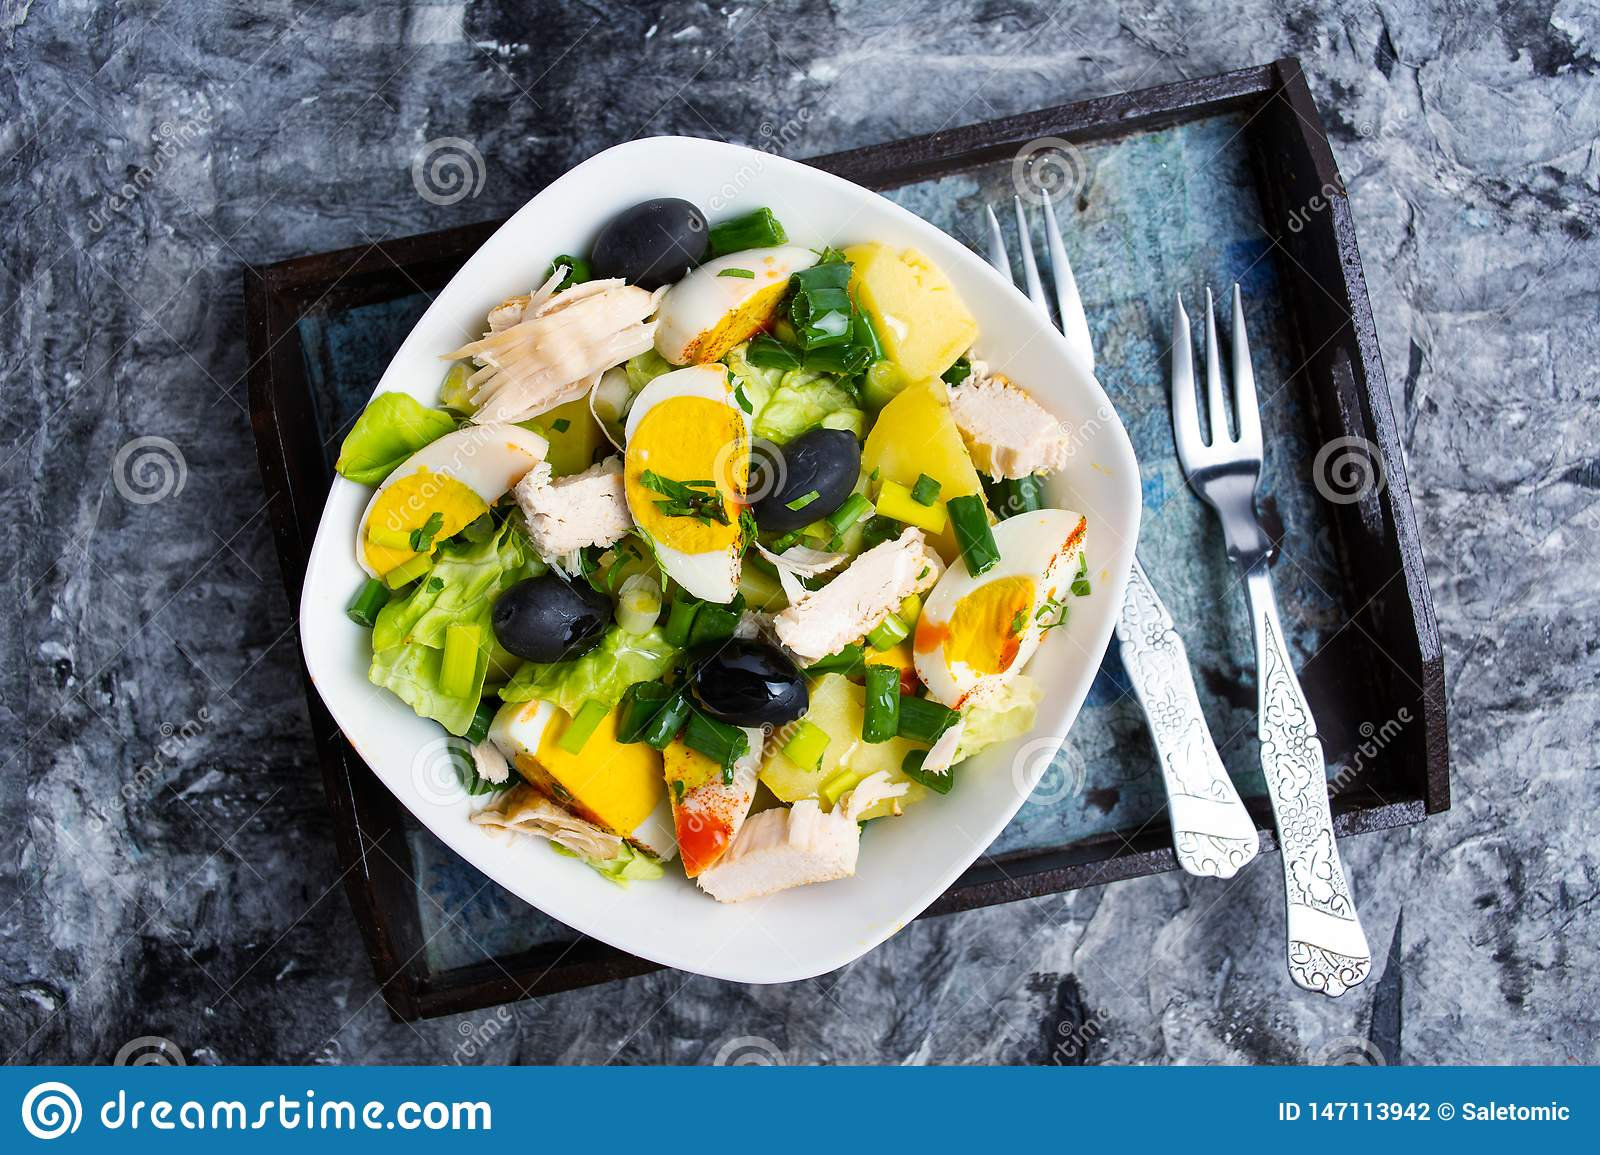 Chicken Salad With Eggs And Vegetables On A Plate Stock Photo Image Of Cheese Food 147113942